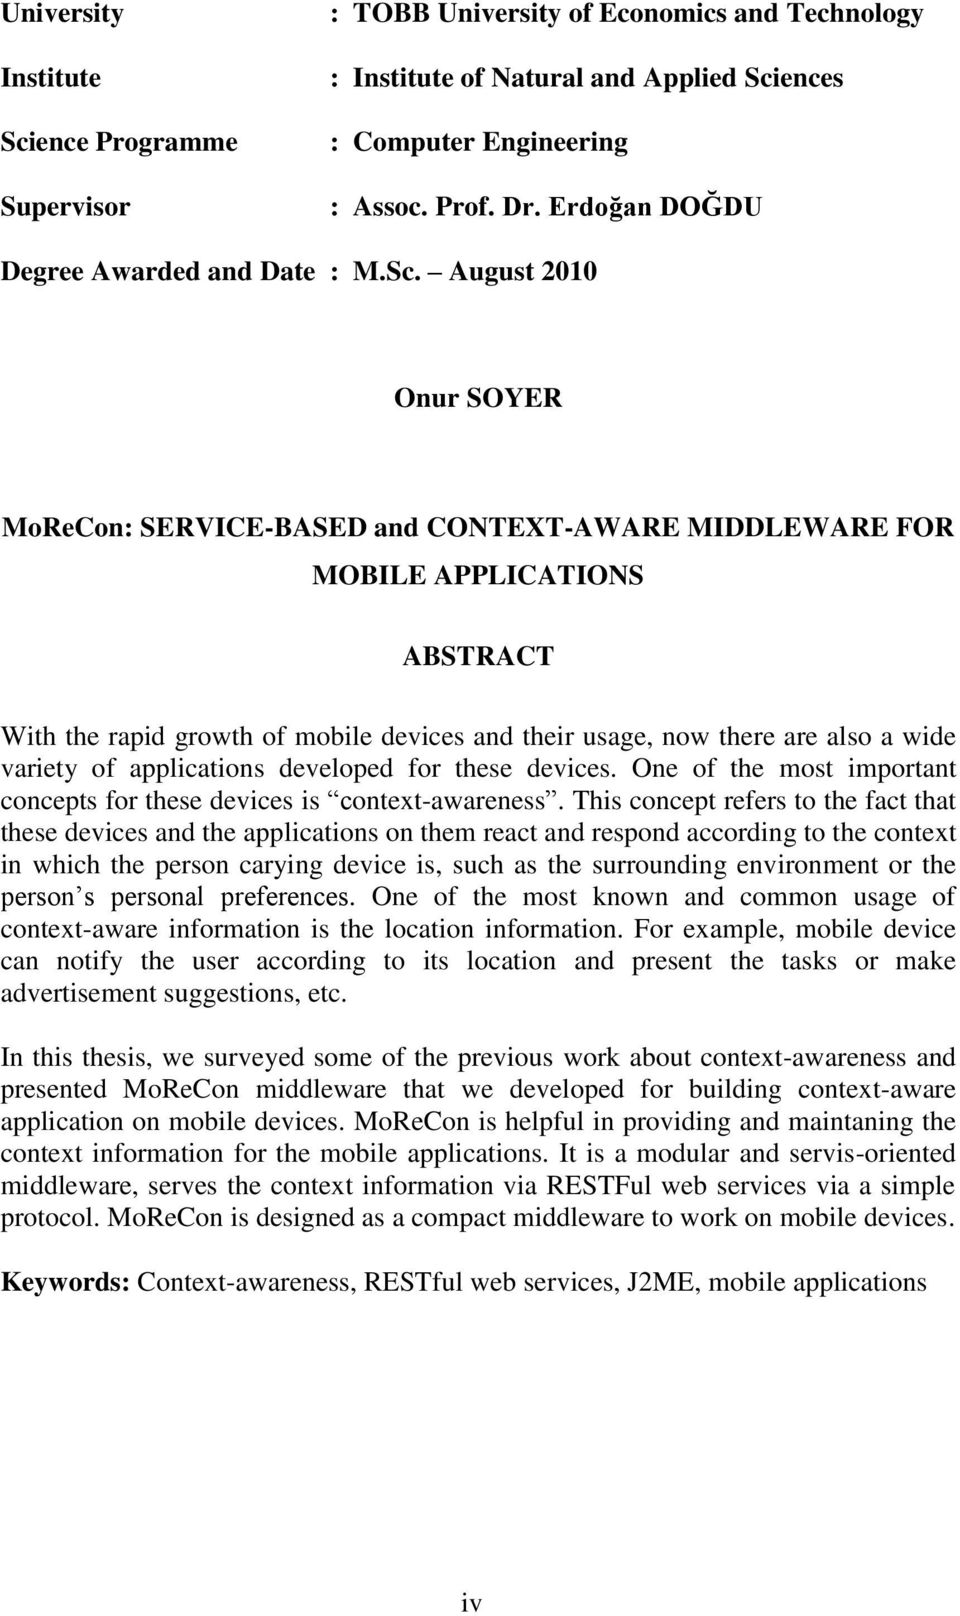 August 2010 Onur SOYER MoReCon: SERVICE-BASED and CONTEXT-AWARE MIDDLEWARE FOR MOBILE APPLICATIONS ABSTRACT With the rapid growth of mobile devices and their usage, now there are also a wide variety